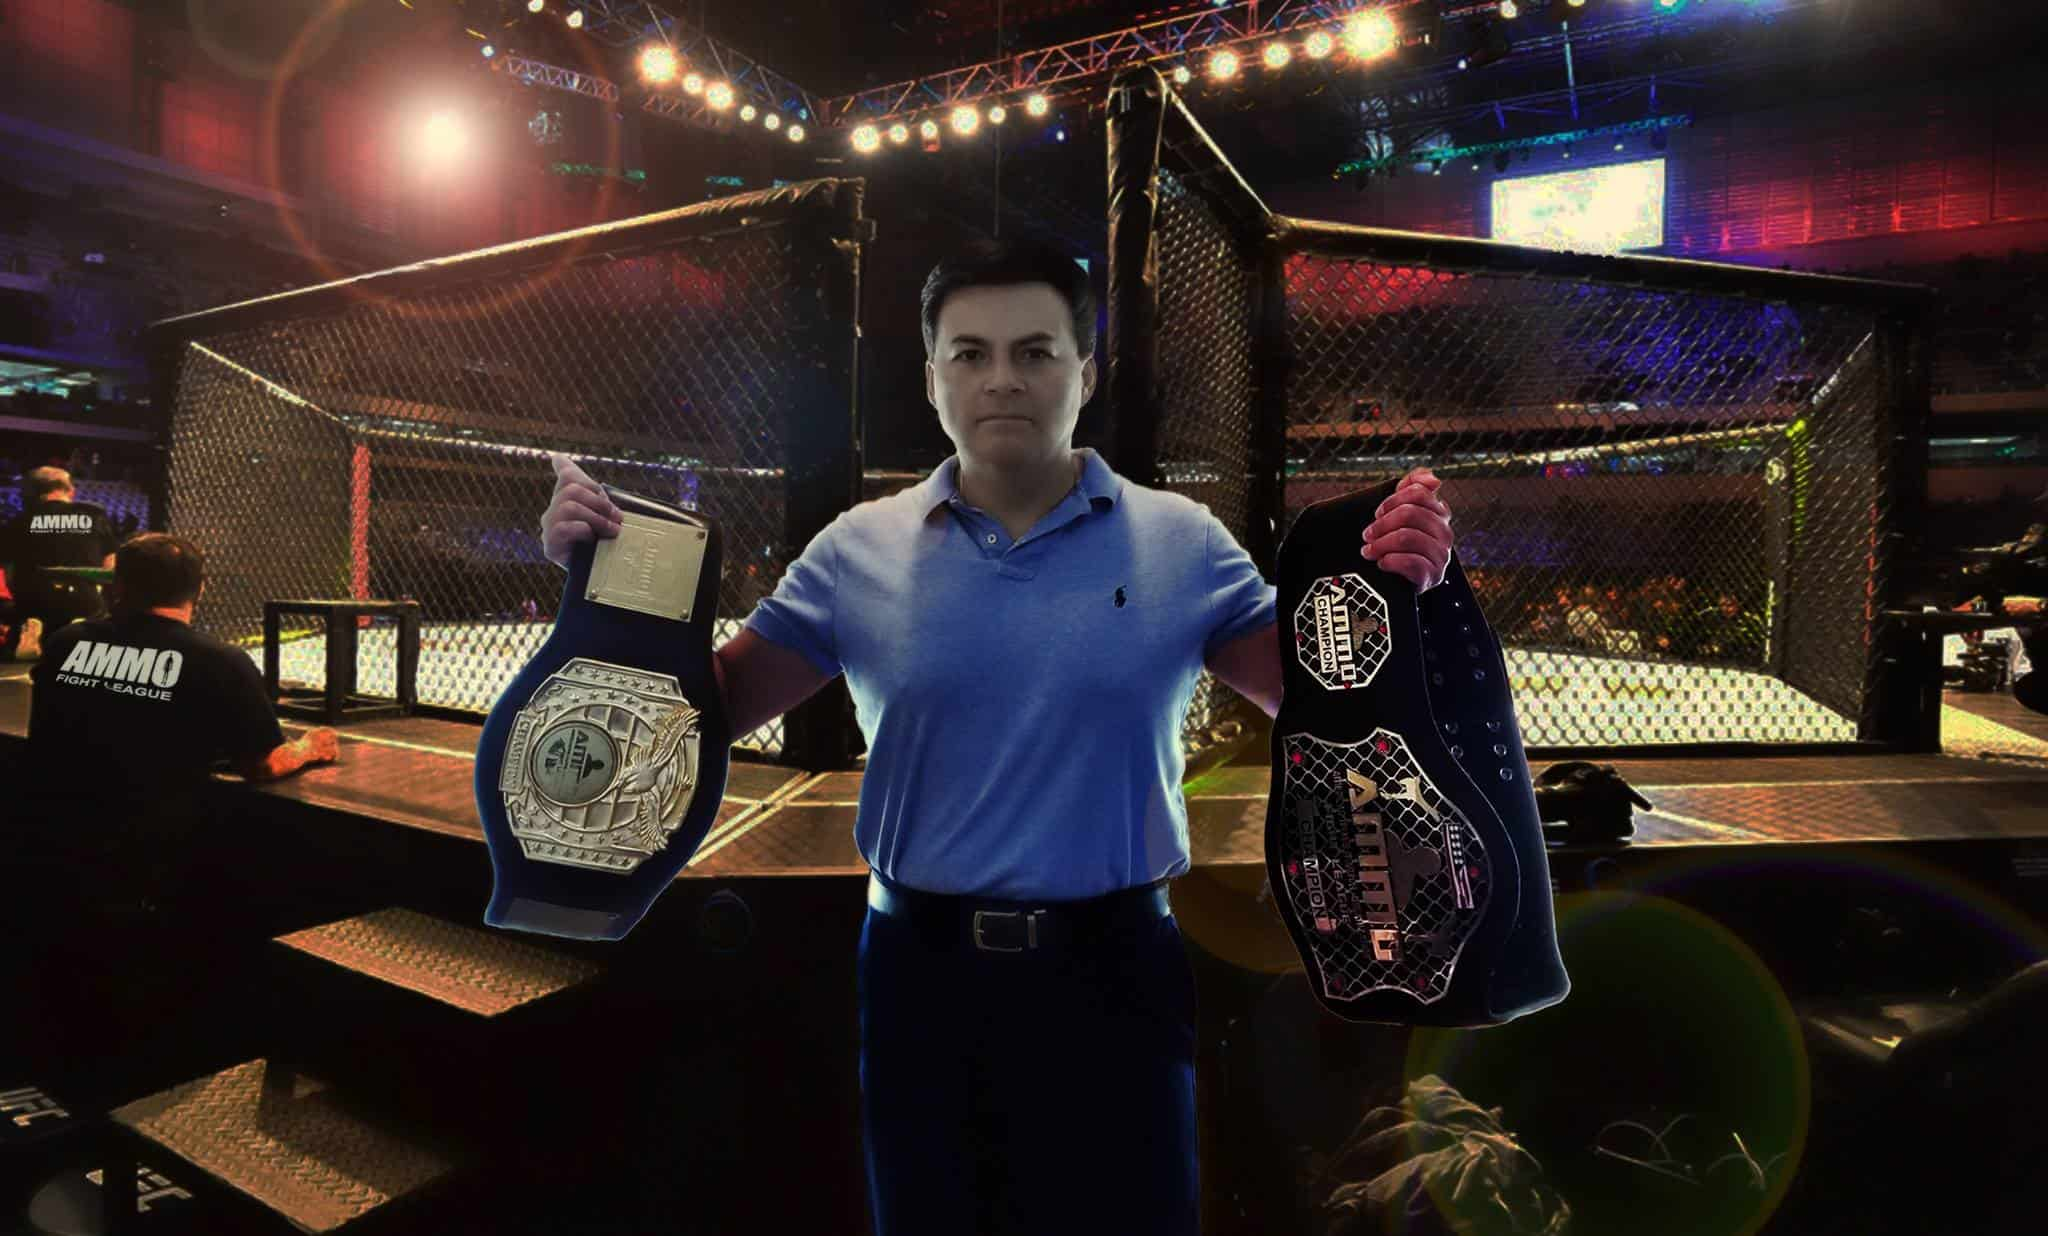 Latino popularizing mixed martial arts in Connecticut